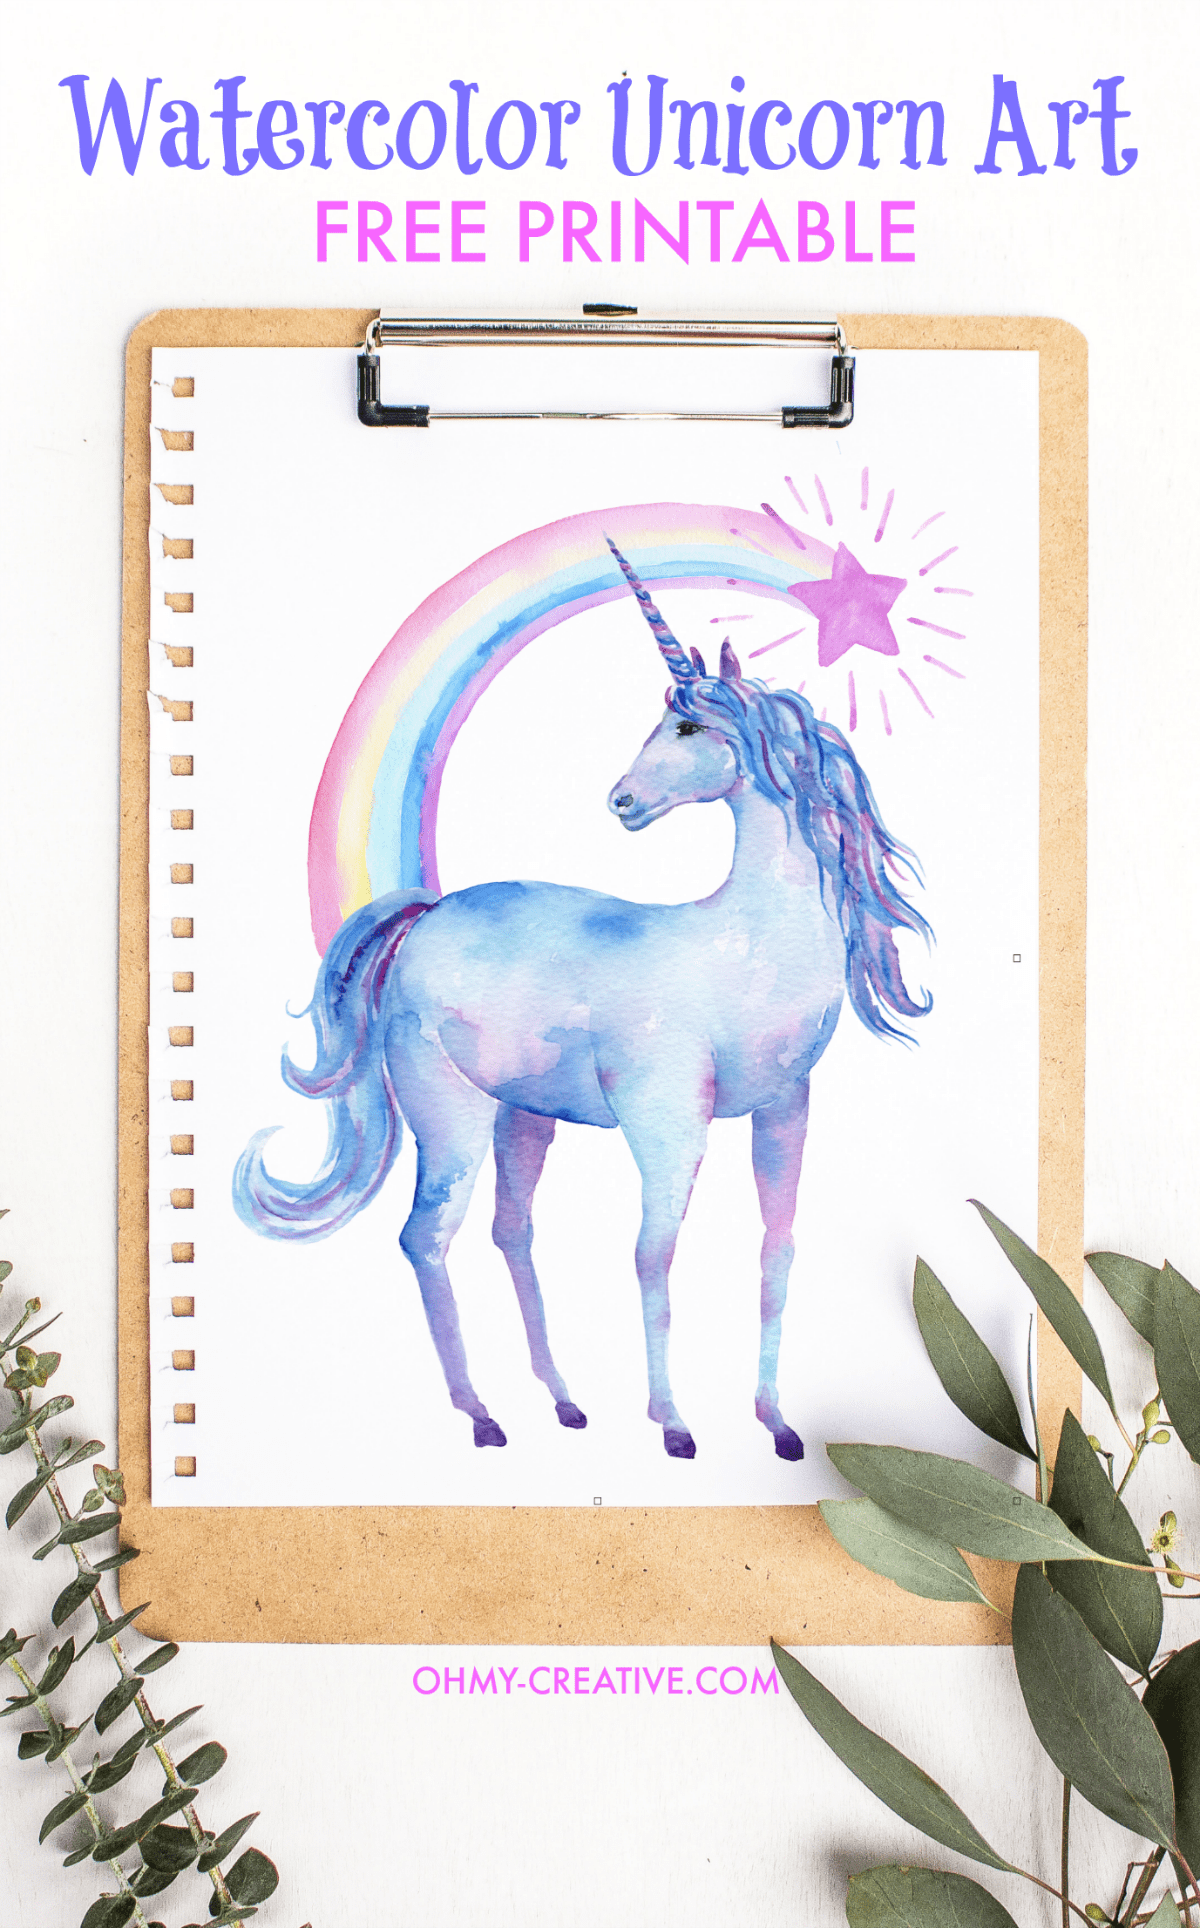 graphic relating to Printable Pictures of Unicorns referred to as Absolutely free Printable Watercolor Unicorn Photographs - Oh My Innovative